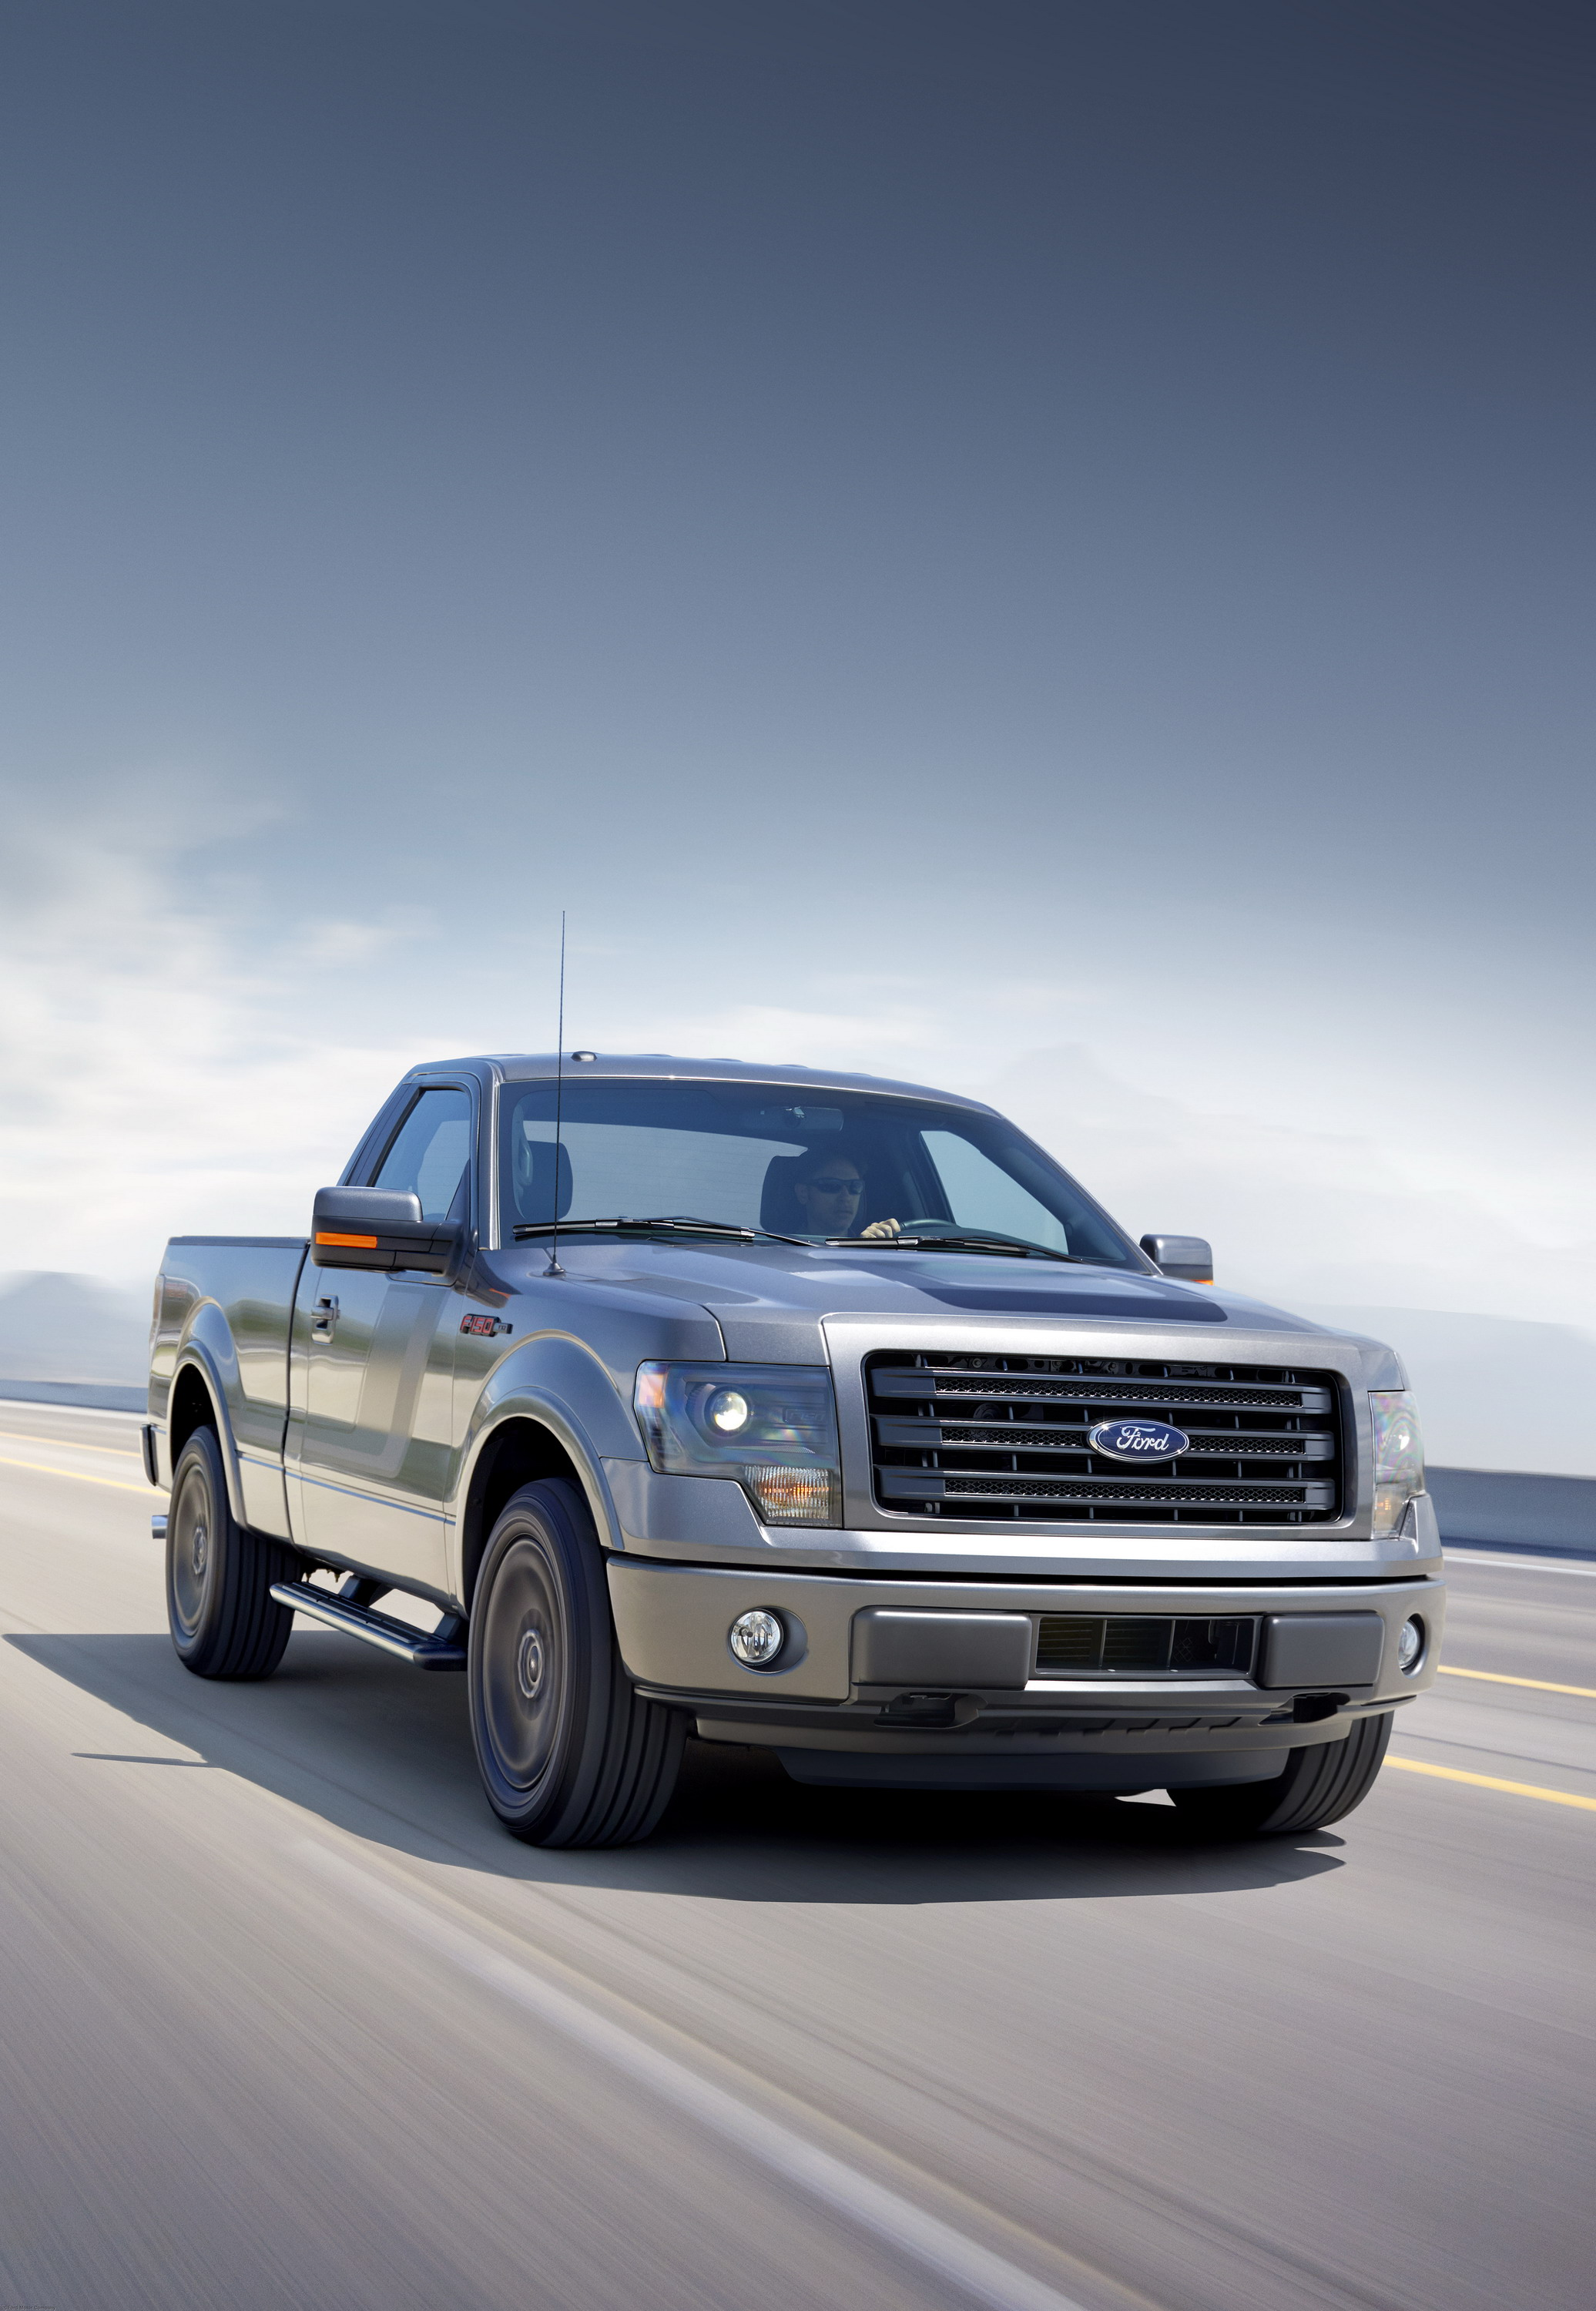 150 Best Tarot Images On Pinterest: 2014 Ford F-150 Tremor Gallery 512900